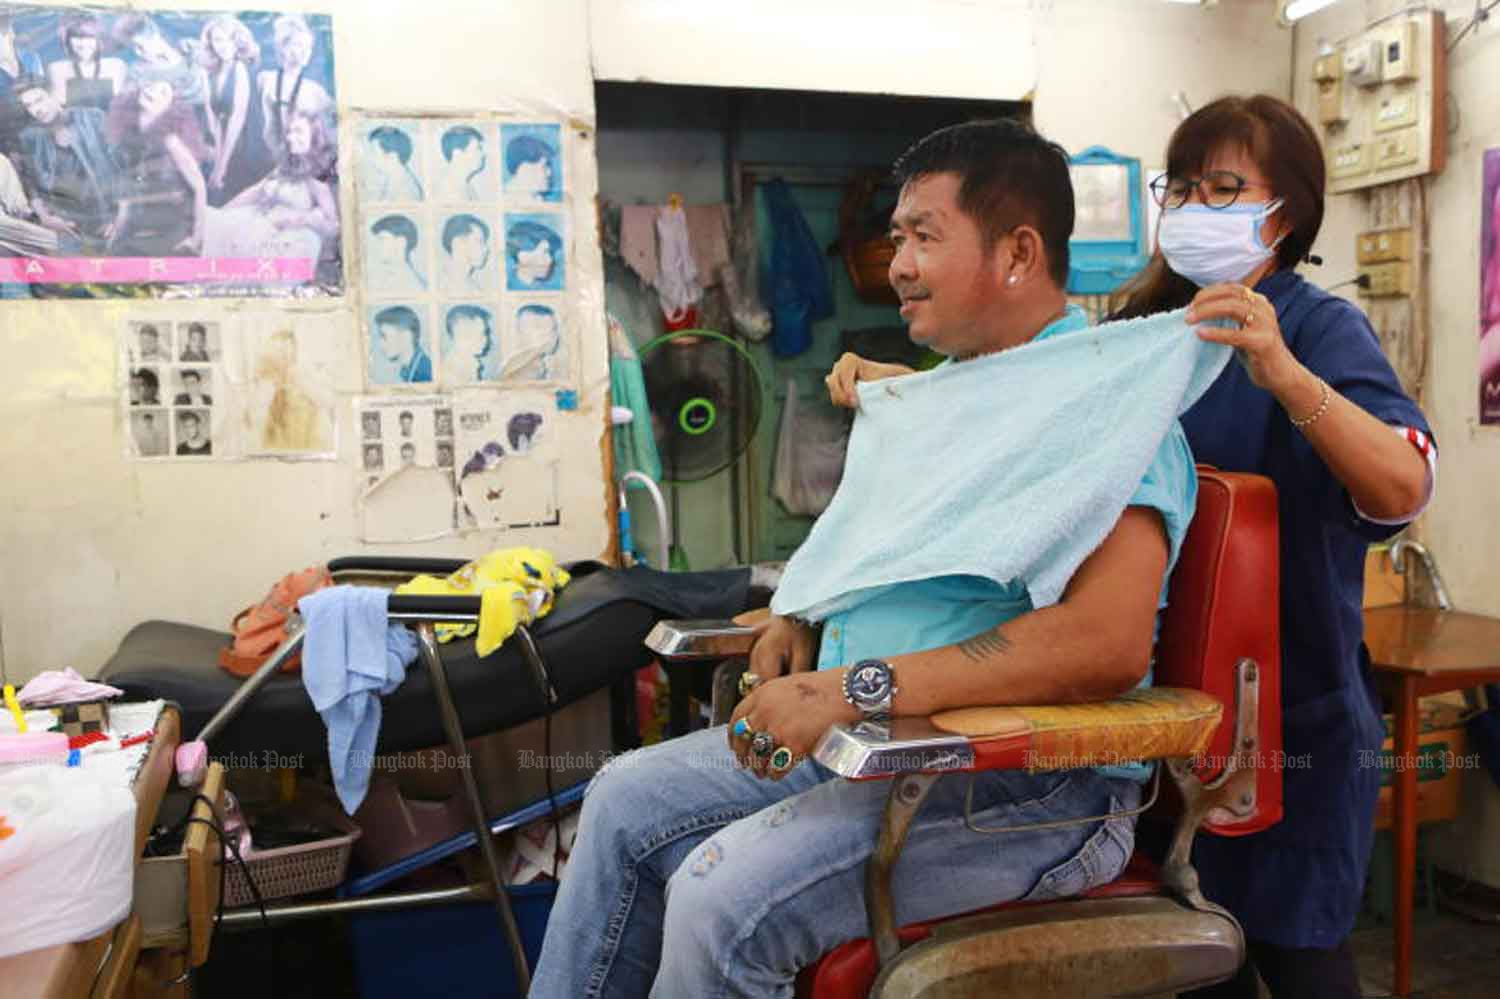 A hairdresser wears a face mask at a shop in Samut Prakan province last month, before the coronavirus shutdown. A decision will be made next week whether barber shops and some other businesses can reopen. (Photo: Somchai Poomlard)